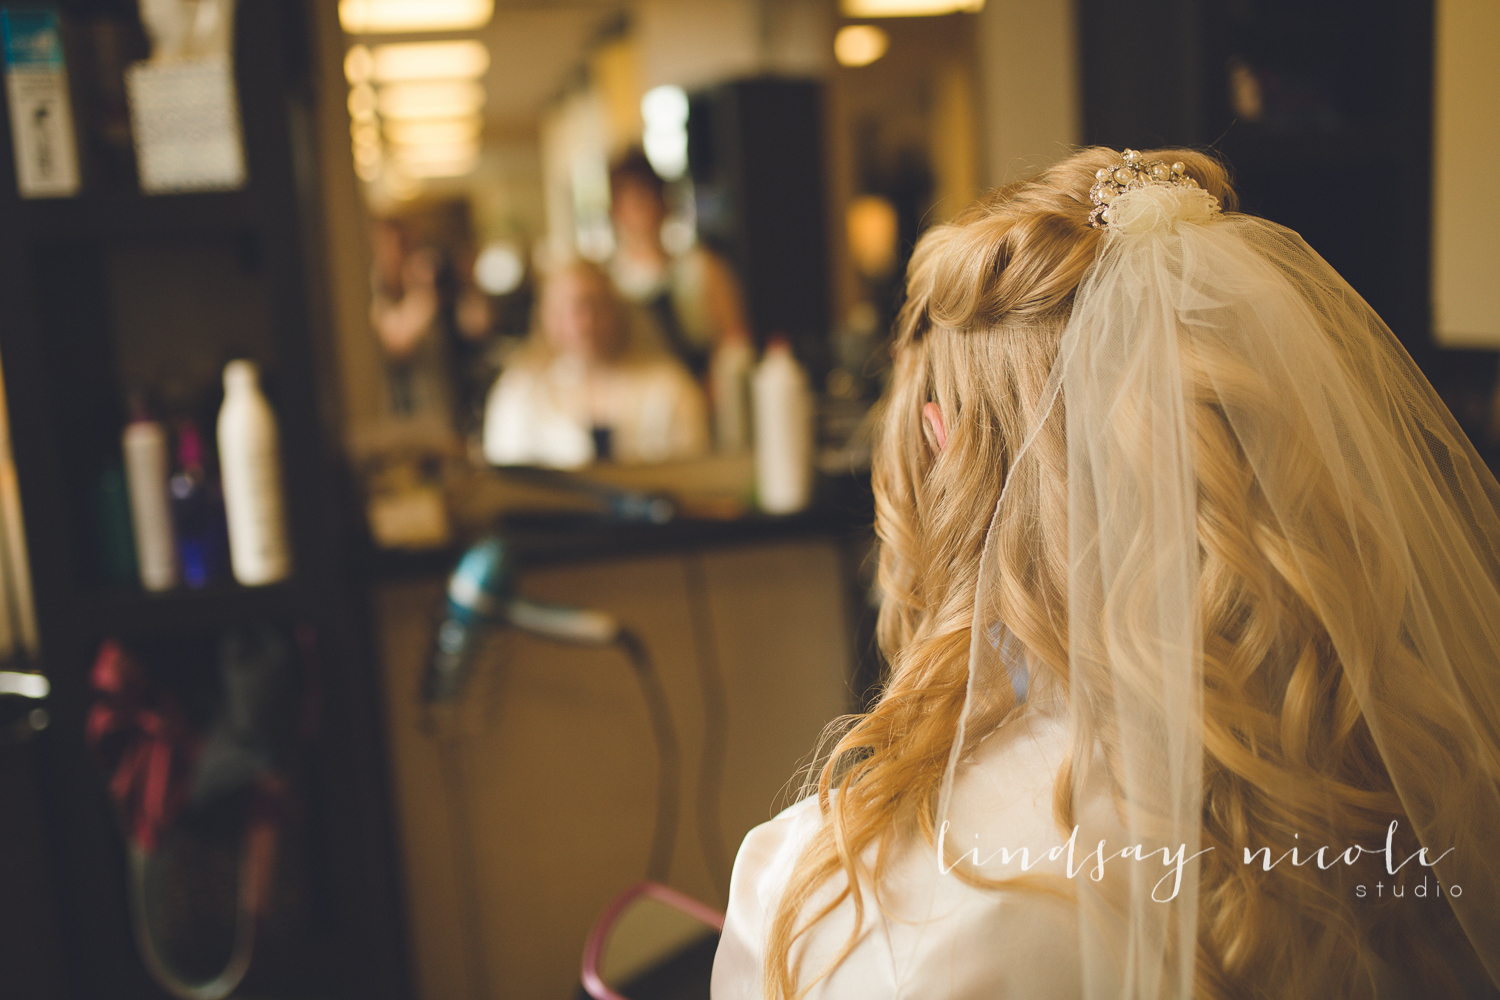 Bethanny sees herself with her veil for the first time at Hair! in Sylvania, Ohio.